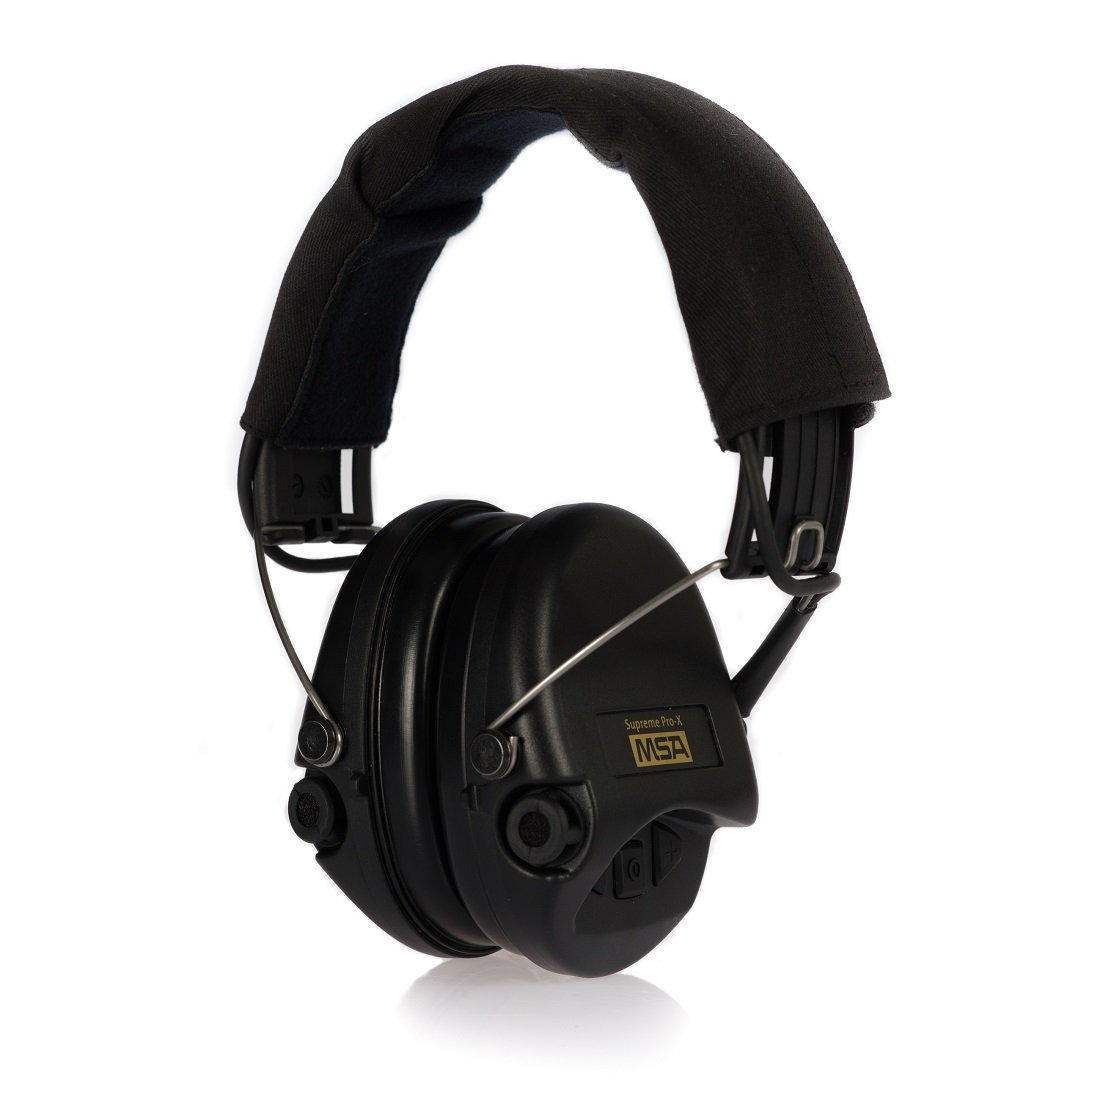 MSA Sordin Supreme Pro X - Standard Edition - Electronic Earmuff with black headband, black cups and foam seals fitted